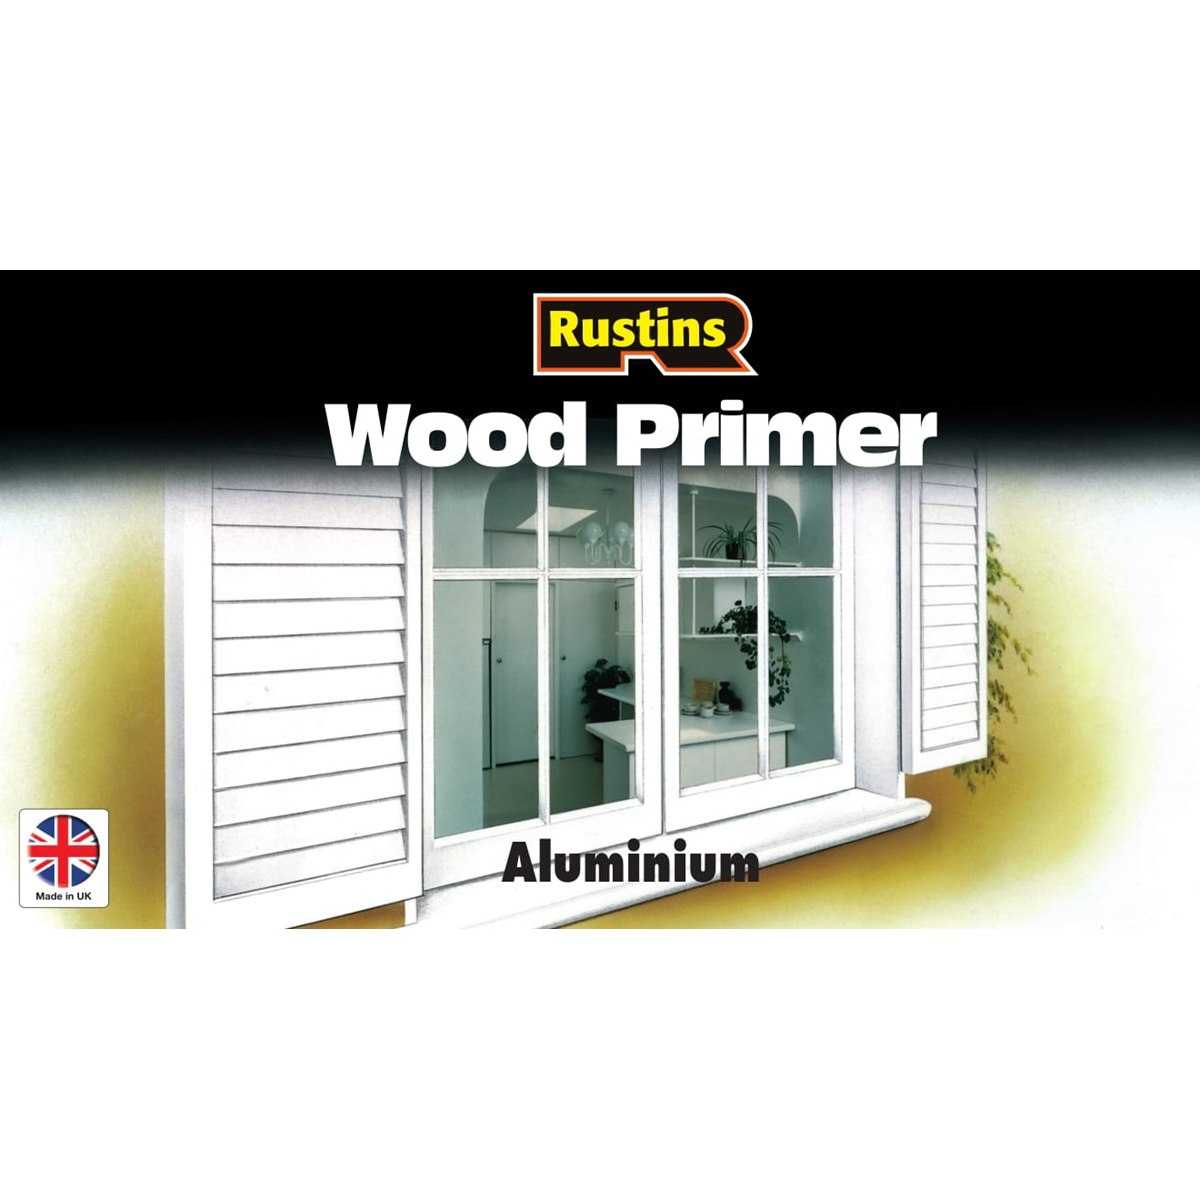 Where to Buy Rustins Aluminium Wood Primer